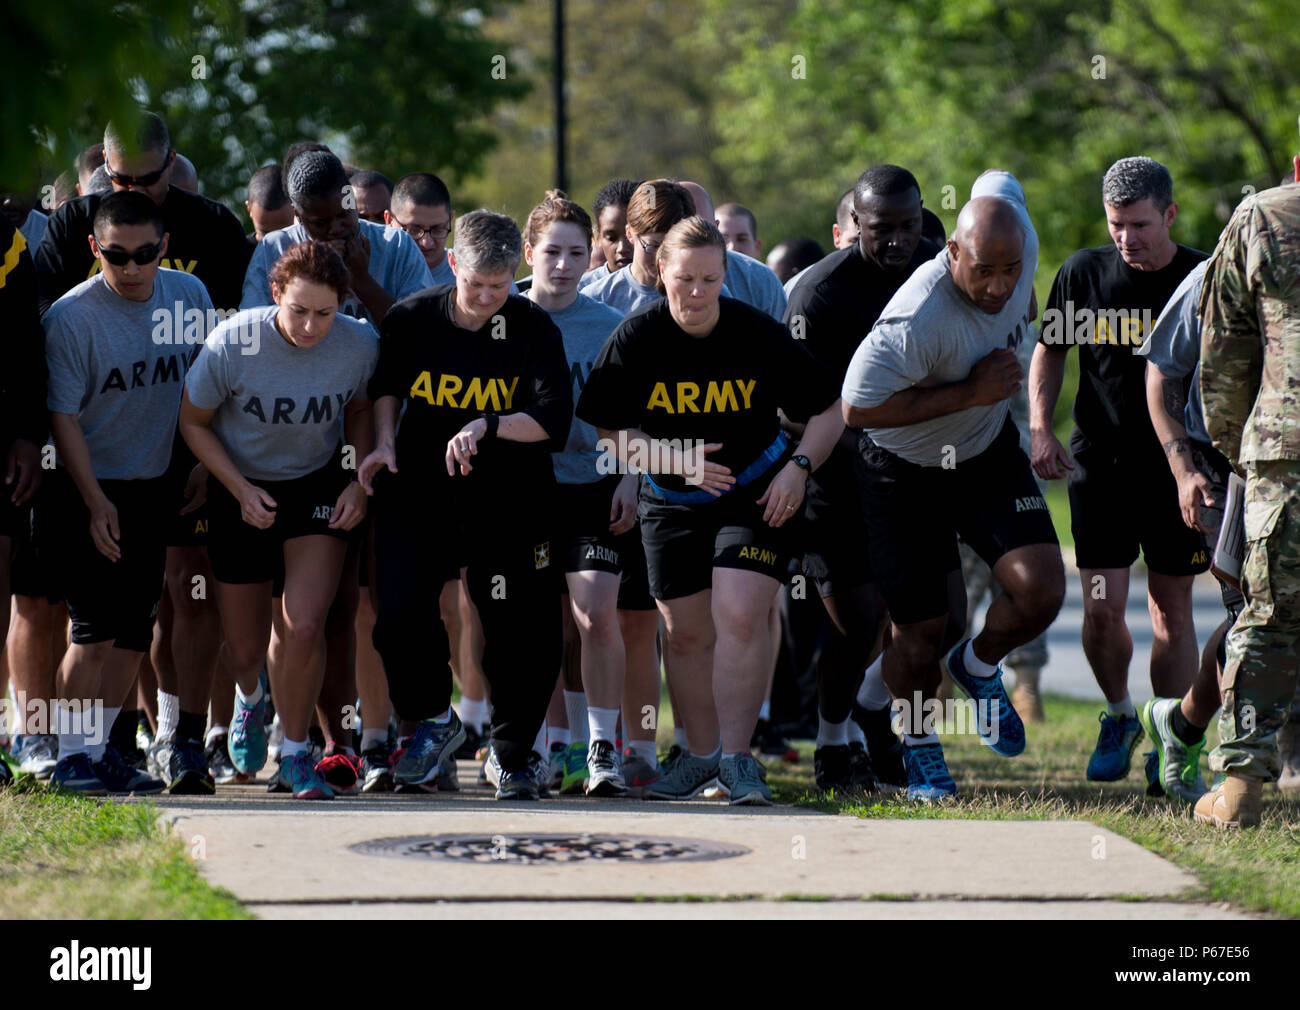 Army Physical Fitness Test Stock Photos & Army Physical